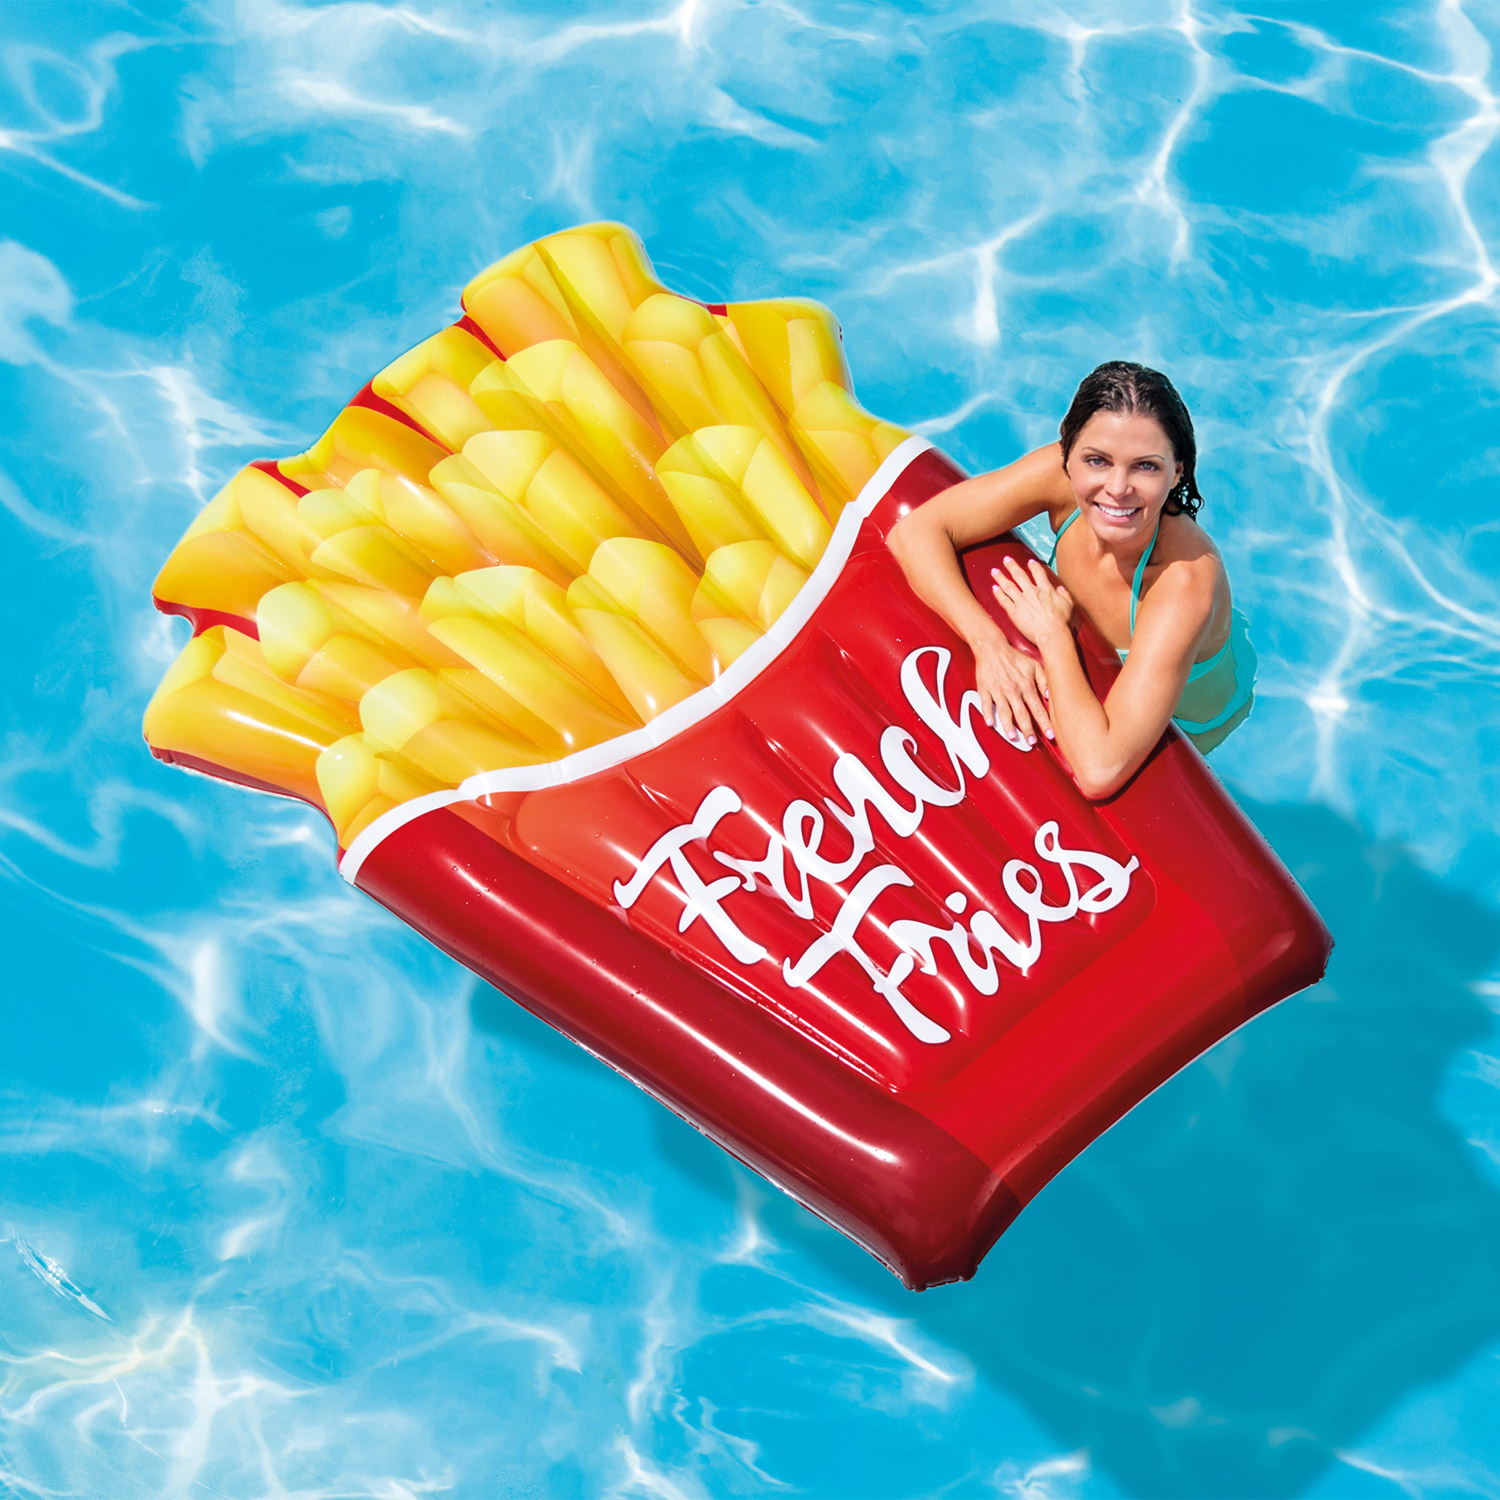 Intex 58775 Poolliege French Fries Pommes 175x132cm